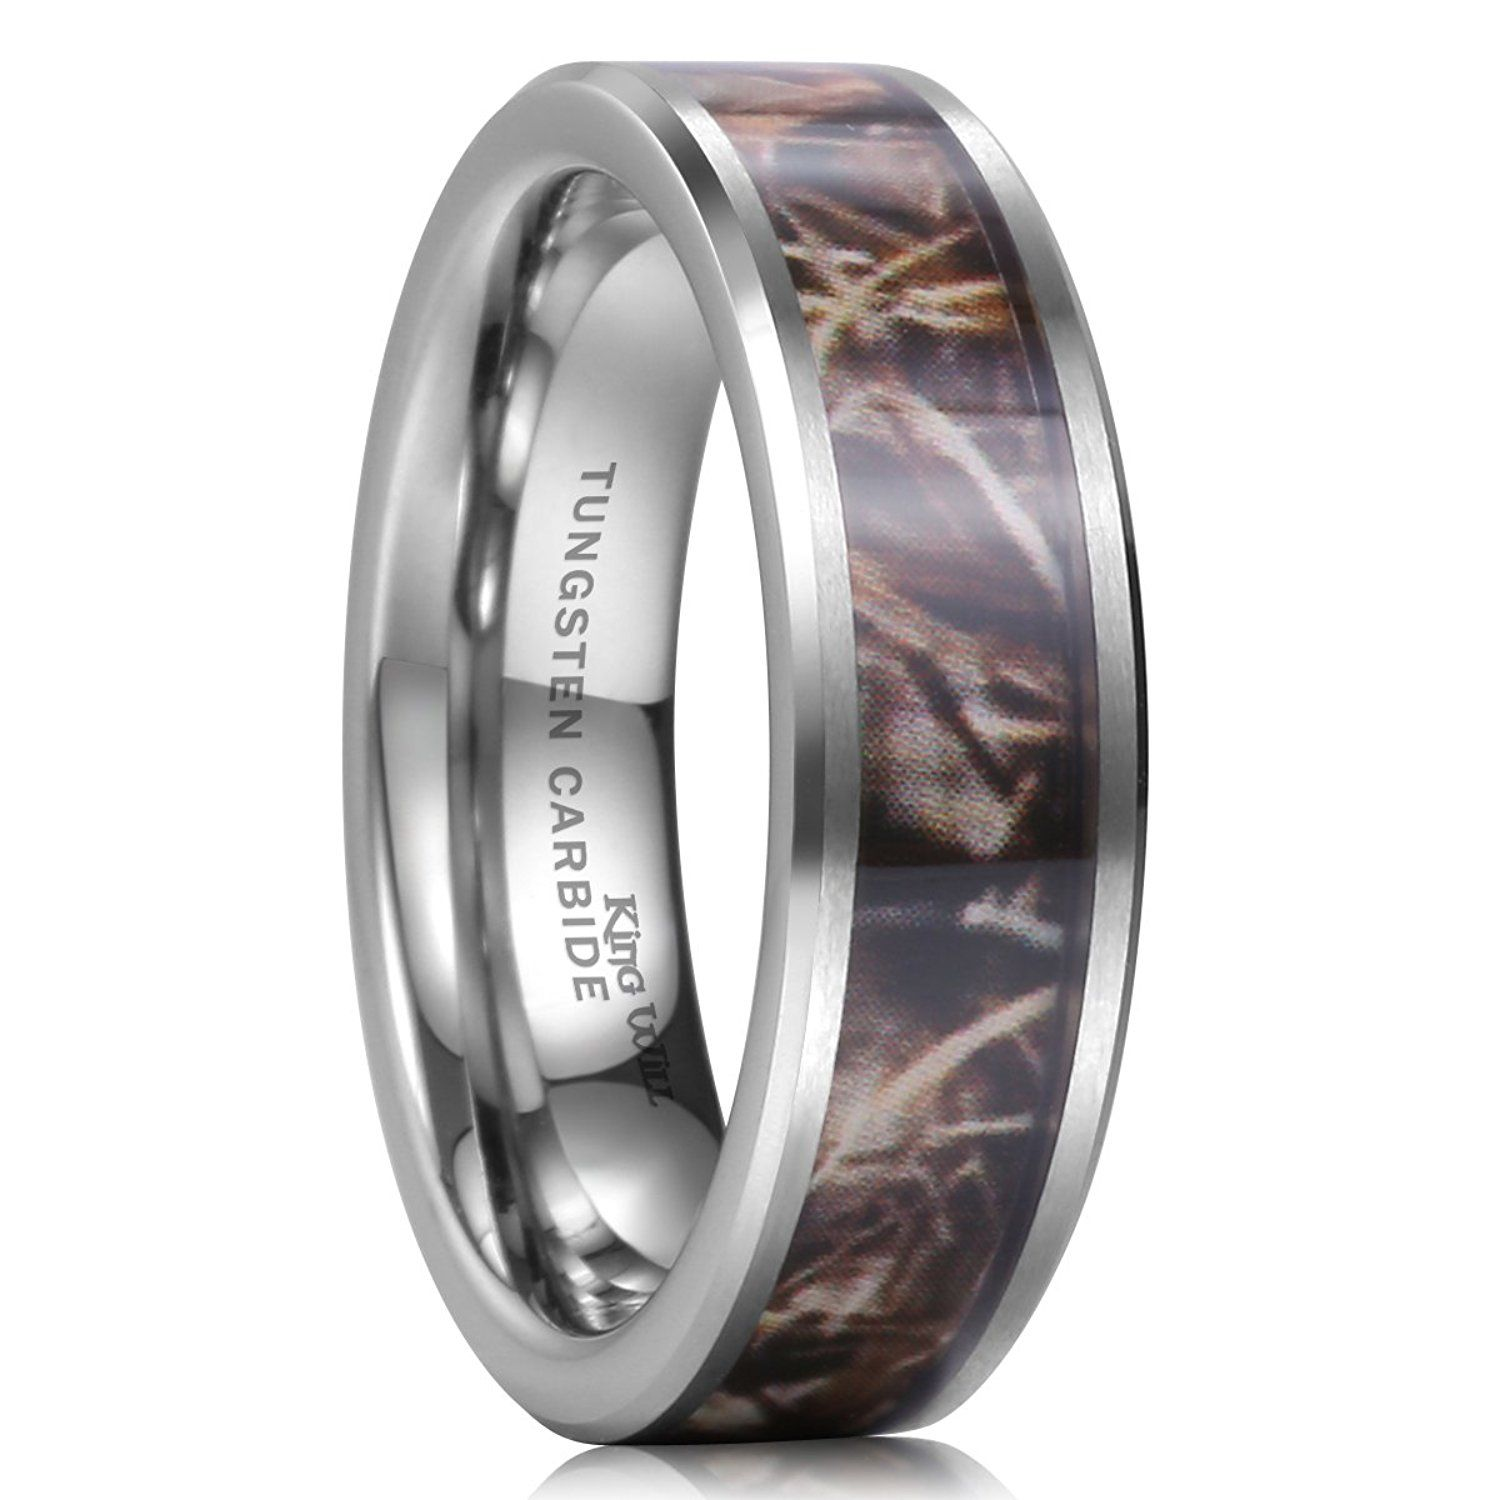 hunting wedding bands King Will 8mm Camouflage Hunting Mens Tungsten Ring Camo Polished Wedding Band Trees Leaves